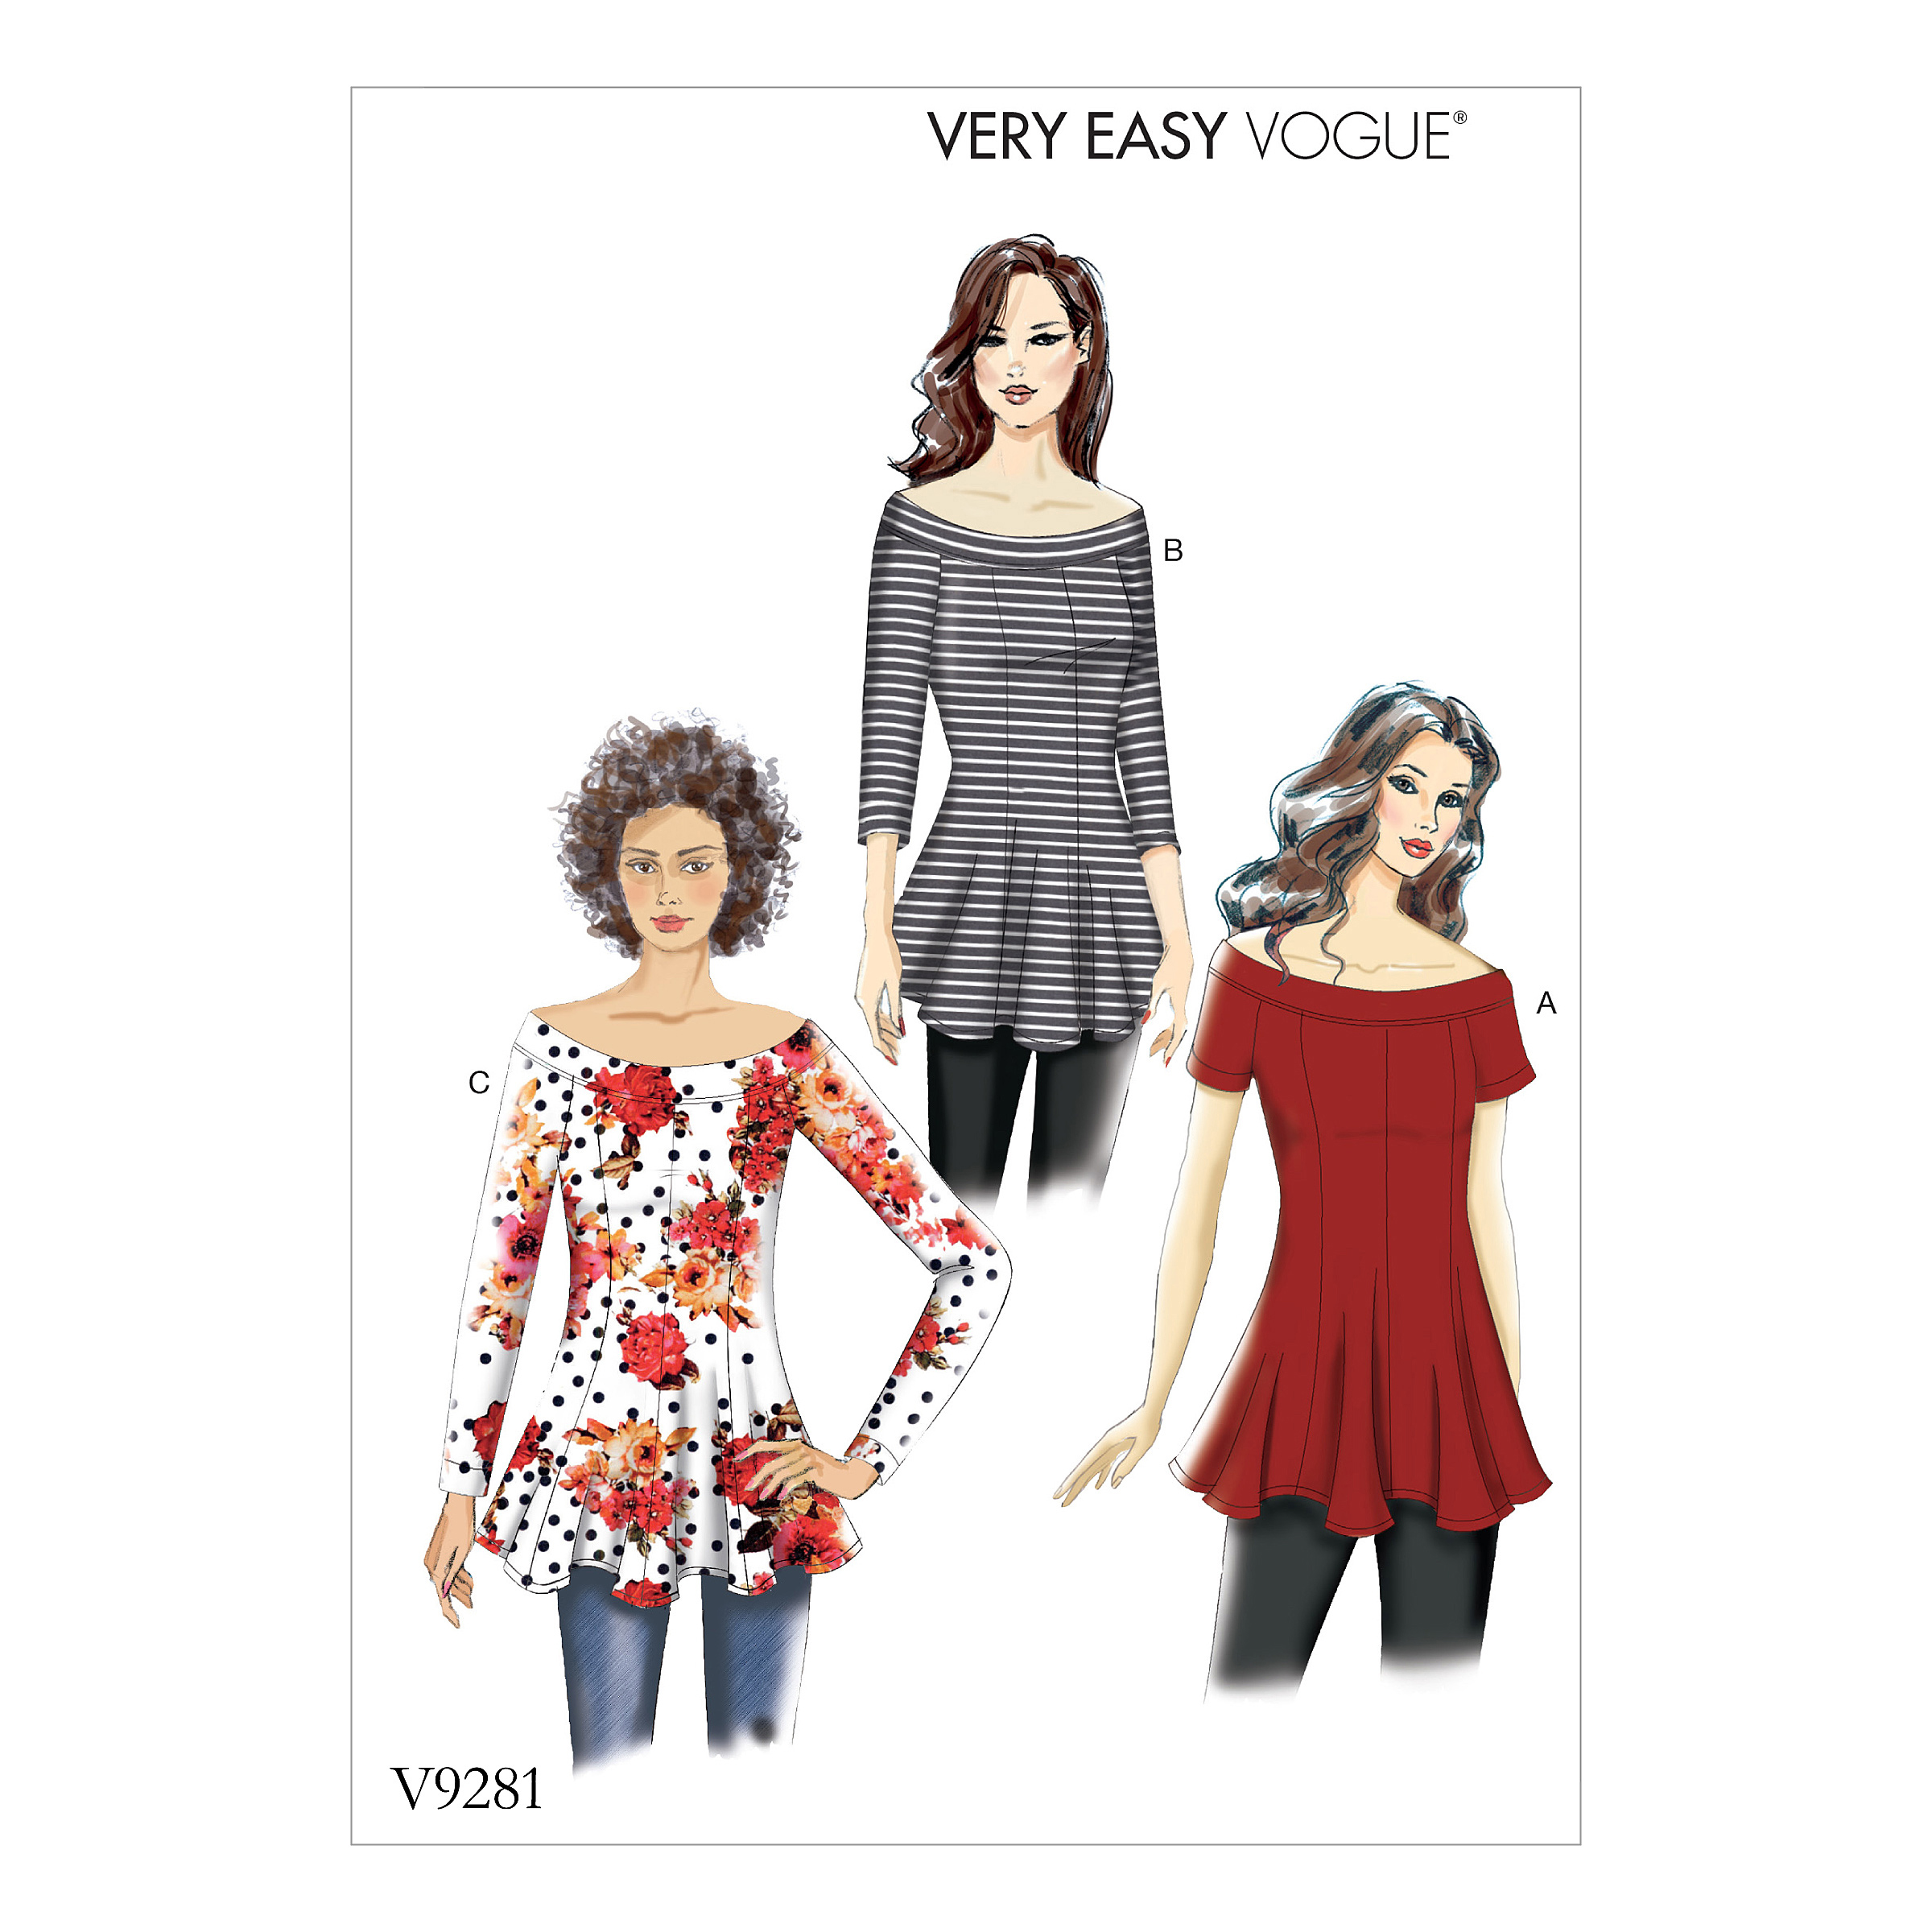 Vogue Patterns Sewing Pattern Misses' Knit Flare-and-Flare Top-6-8-10-12-14